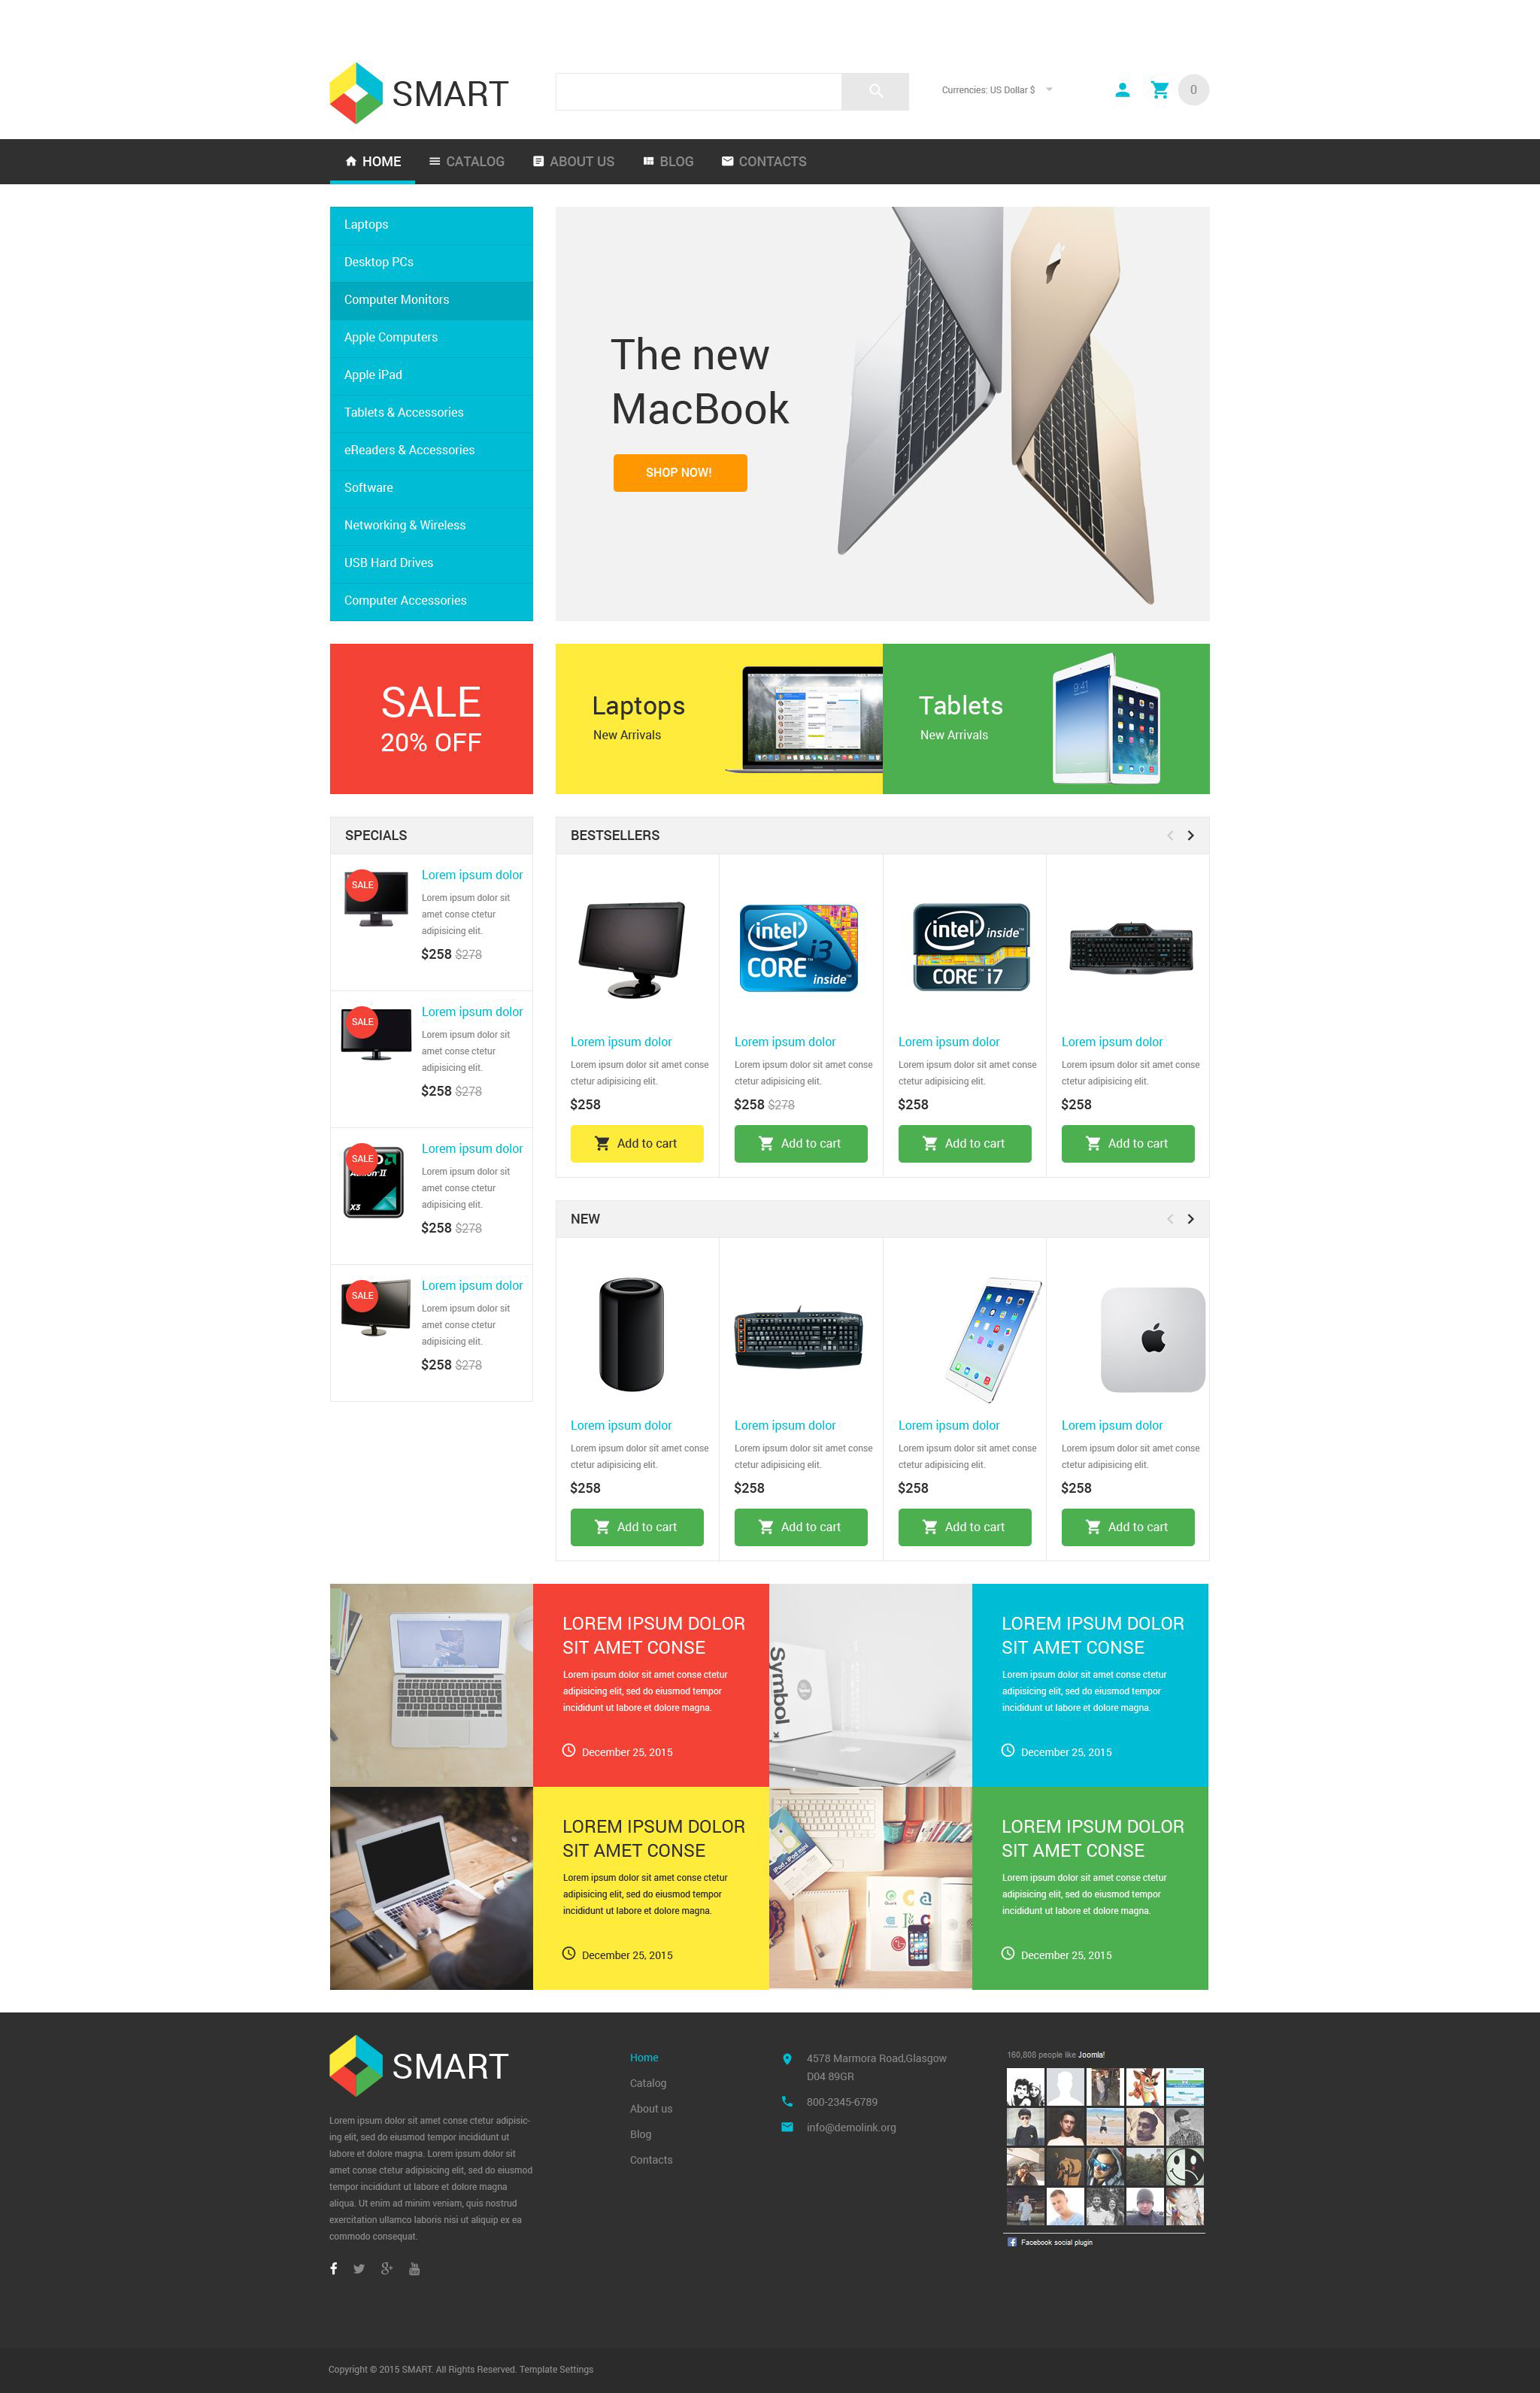 The Electronic Online Shop VirtueMart Design 54009, one of the best VirtueMart templates of its kind (electronics, most popular), also known as electronic online shop VirtueMart template, delivery VirtueMart template, computer VirtueMart template, office VirtueMart template, staff VirtueMart template, printer VirtueMart template, notebook VirtueMart template, laptop shipment VirtueMart template, desktop portable VirtueMart template, scanner VirtueMart template, camera VirtueMart template, monitor VirtueMart template, cable system VirtueMart template, technology VirtueMart template, processor VirtueMart template, installation VirtueMart template, hardware VirtueMart template, input VirtueMart template, device VirtueMart template, memory VirtueMart template, server VirtueMart template, accessory VirtueMart template, wireless VirtueMart template, PC connection and related with electronic online shop, delivery, computer, office, staff, printer, notebook, laptop shipment, desktop portable, scanner, camera, monitor, cable system, technology, processor, installation, hardware, input, device, memory, server, accessory, wireless, PC connection, etc.